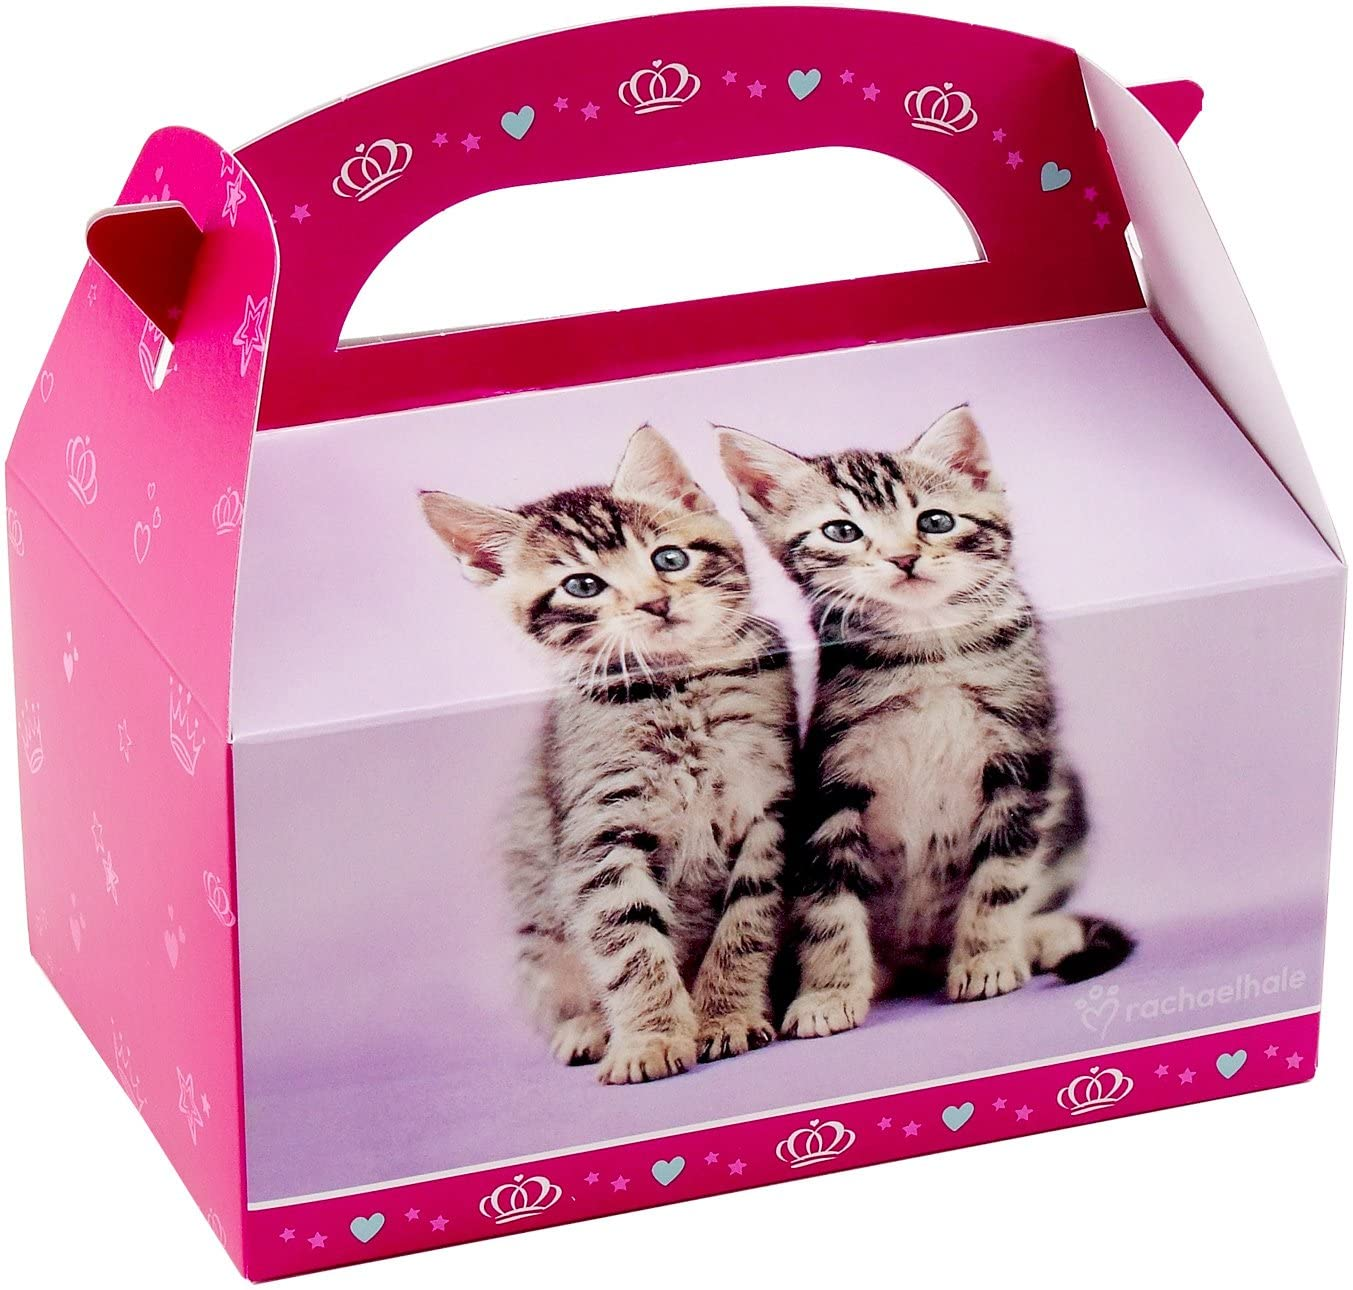 BirthdayExpress Rachael Hale Glamour Cats Party Supplies - Empty Favor Boxes (4)